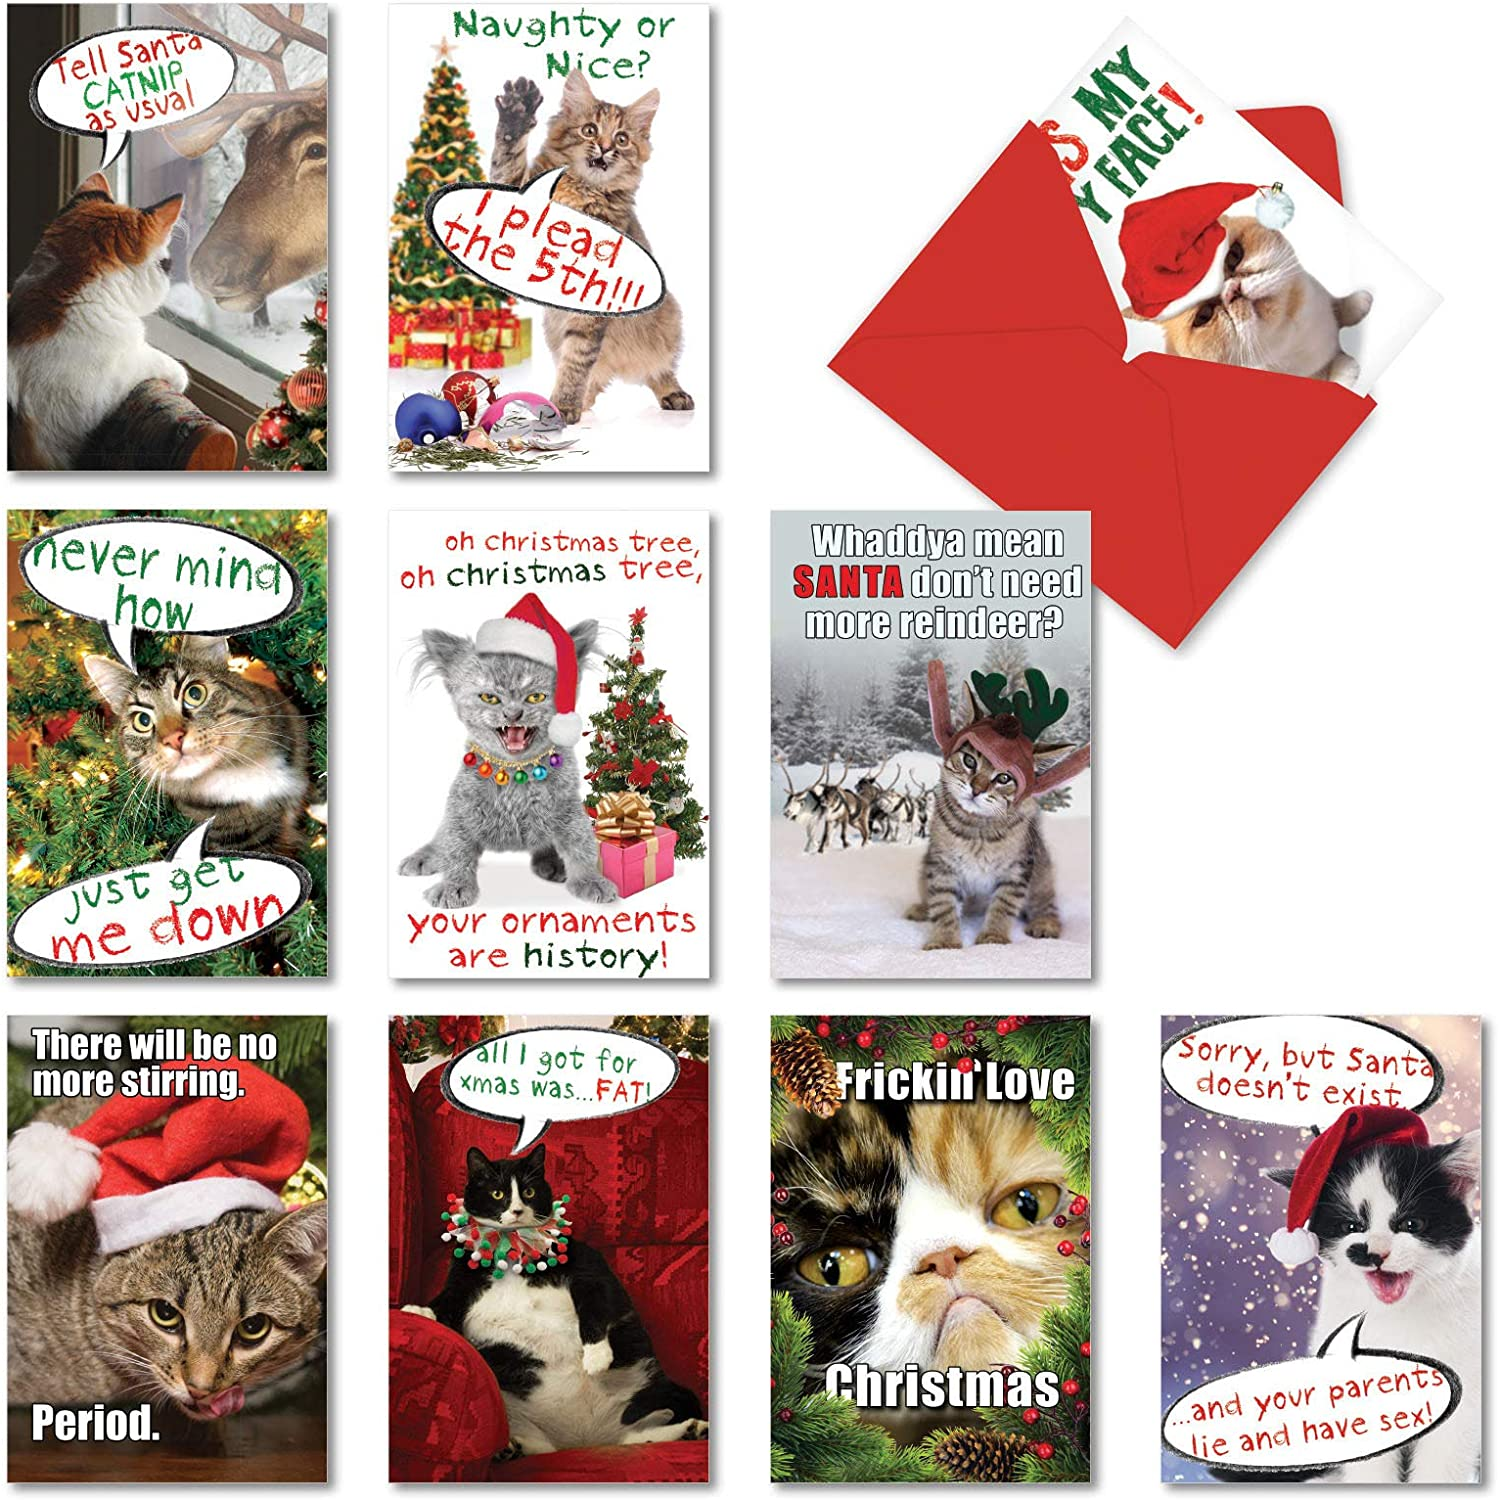 Amazon Com Nobleworks 10 Funny Assorted Christmas Cards Boxed Happy Holiday Assortment Notecards With Envelopes Petigreet Cat Mass A1254 Office Products